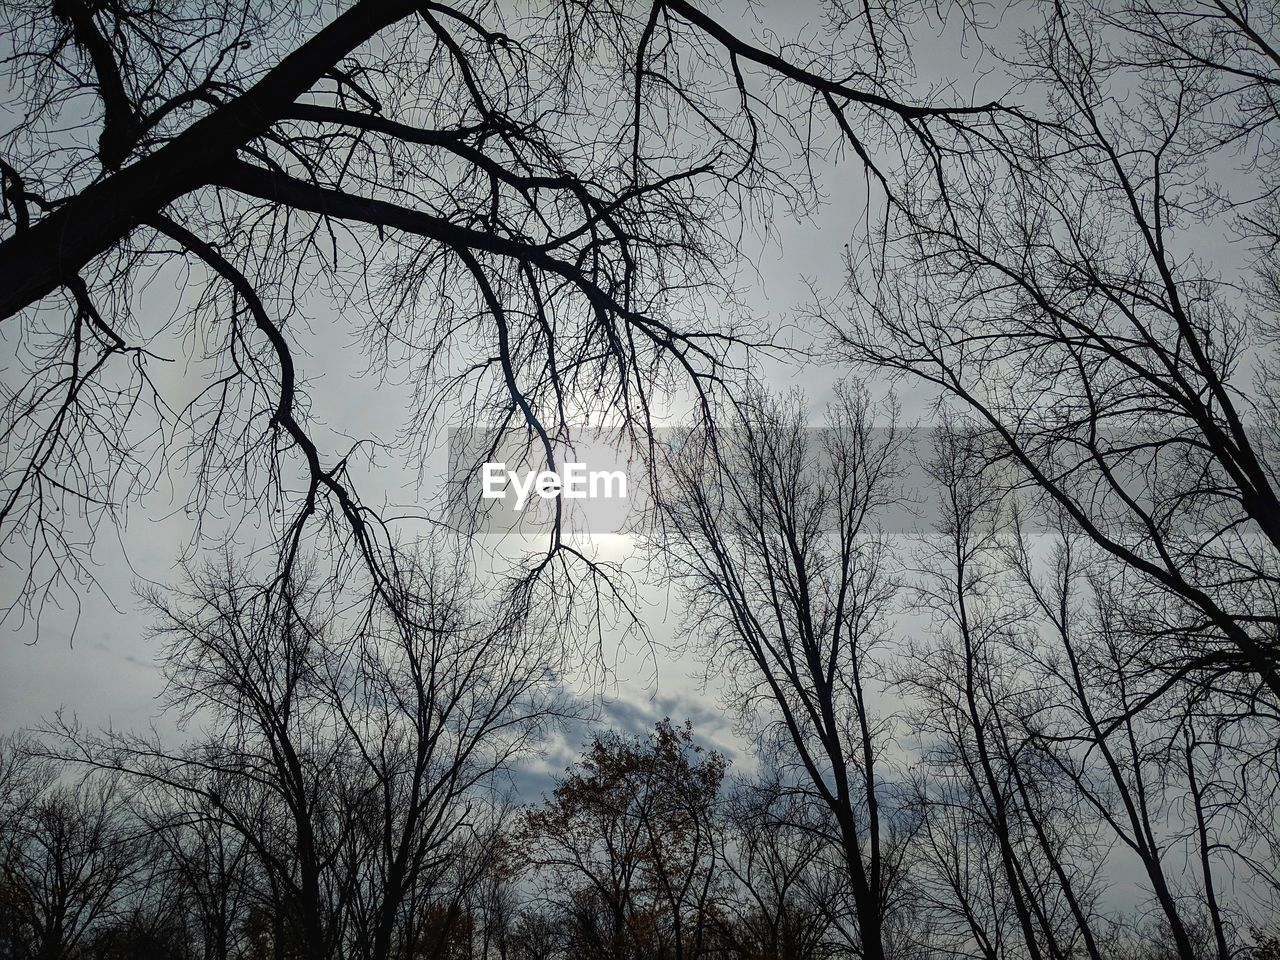 tree, bare tree, branch, sky, plant, silhouette, low angle view, no people, tranquility, nature, beauty in nature, scenics - nature, outdoors, tranquil scene, cloud - sky, dusk, day, backgrounds, spooky, tree canopy